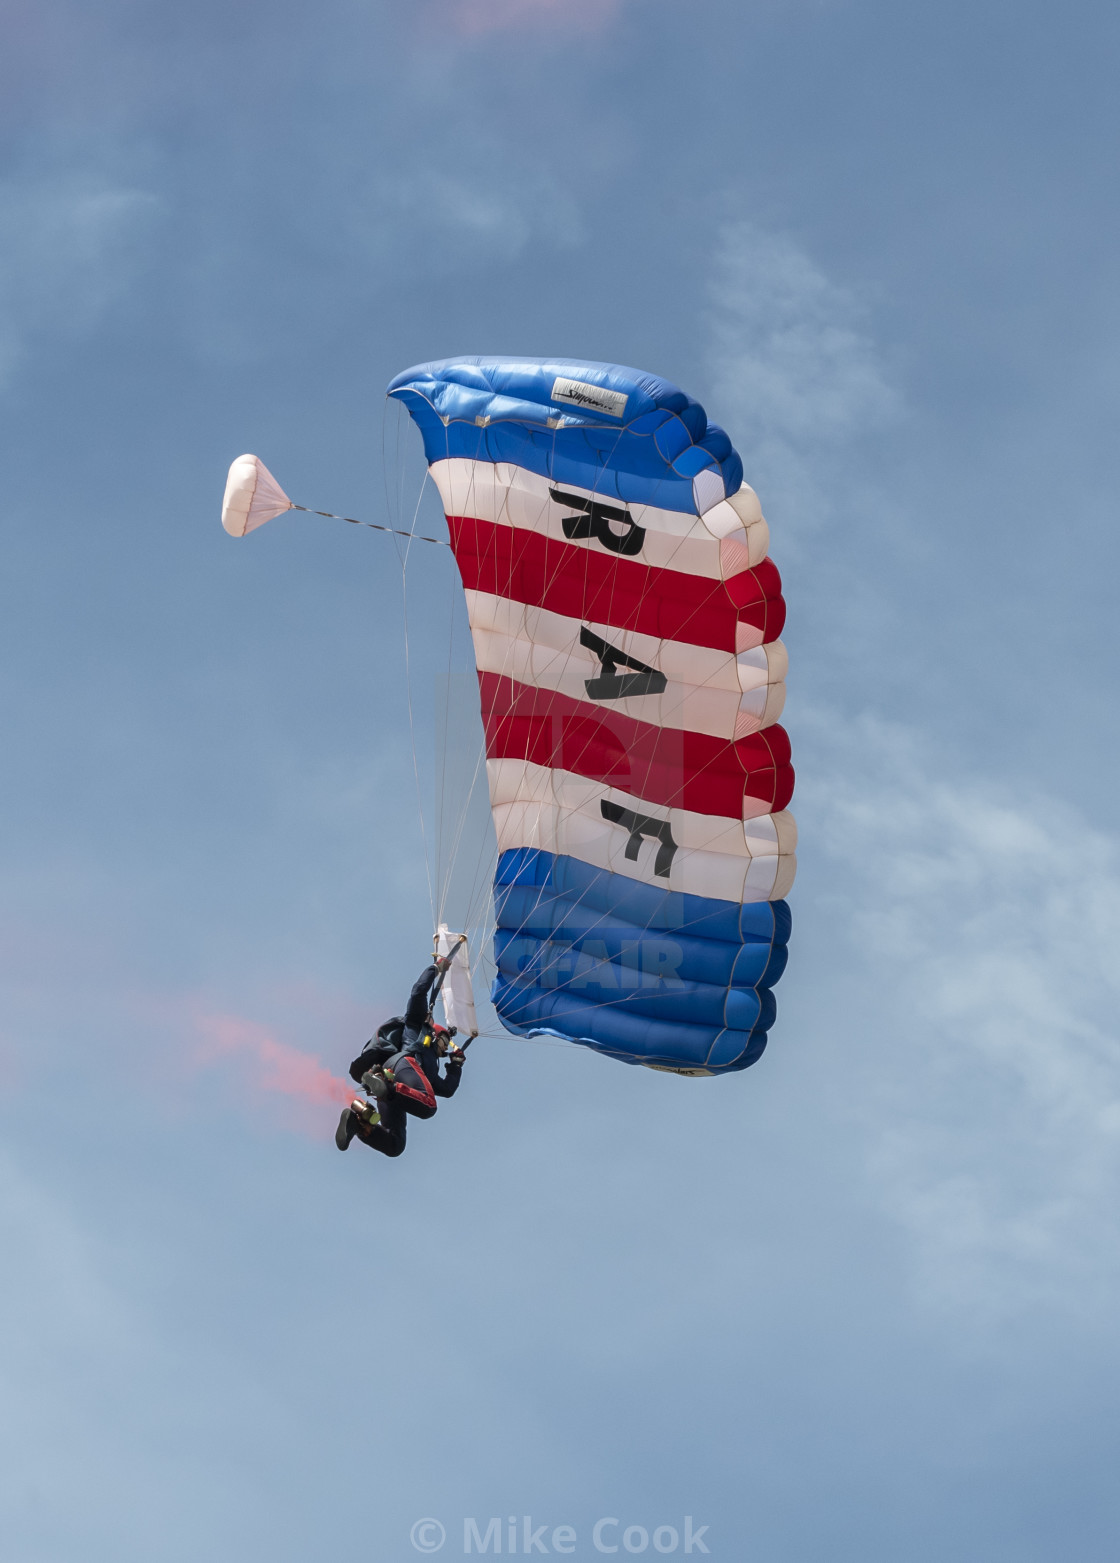 """Falcons free fall parachute display team."" stock image"